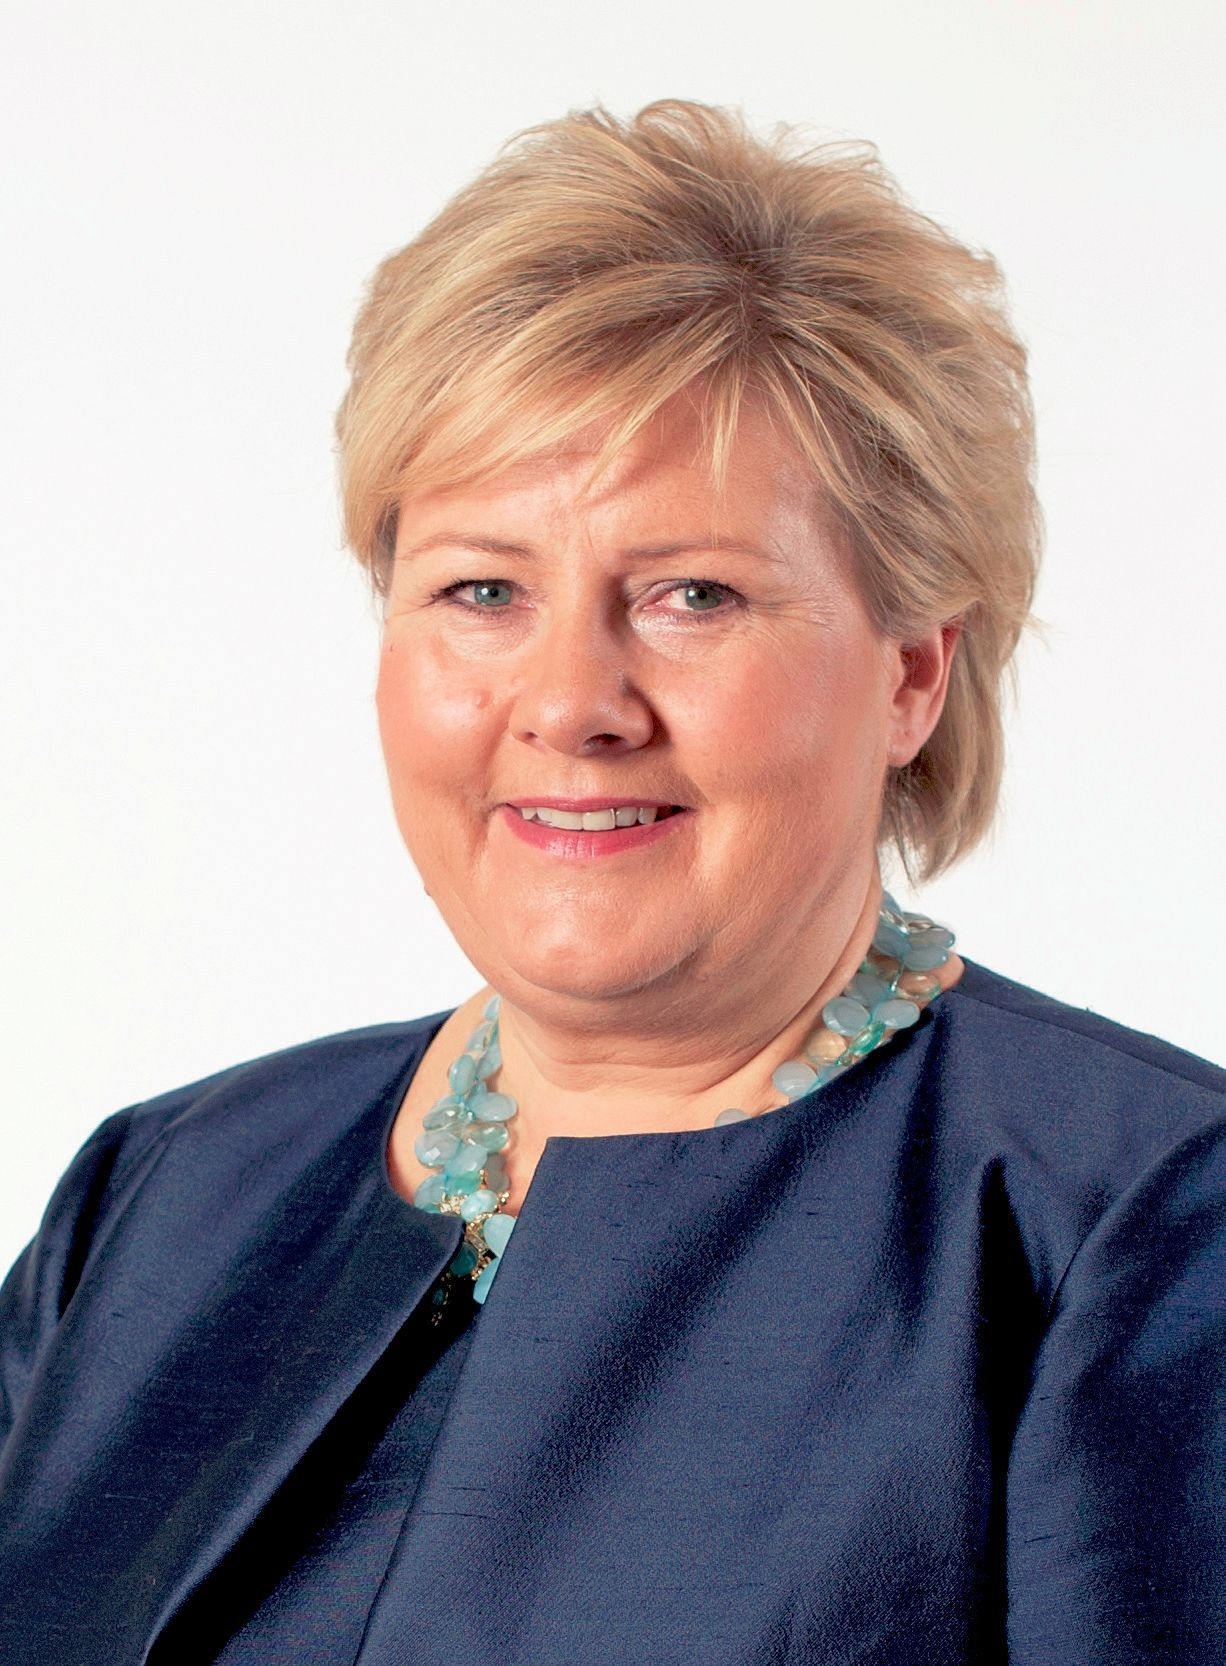 Erna Solberg Prime Minister Of Norway 2013 In 2019